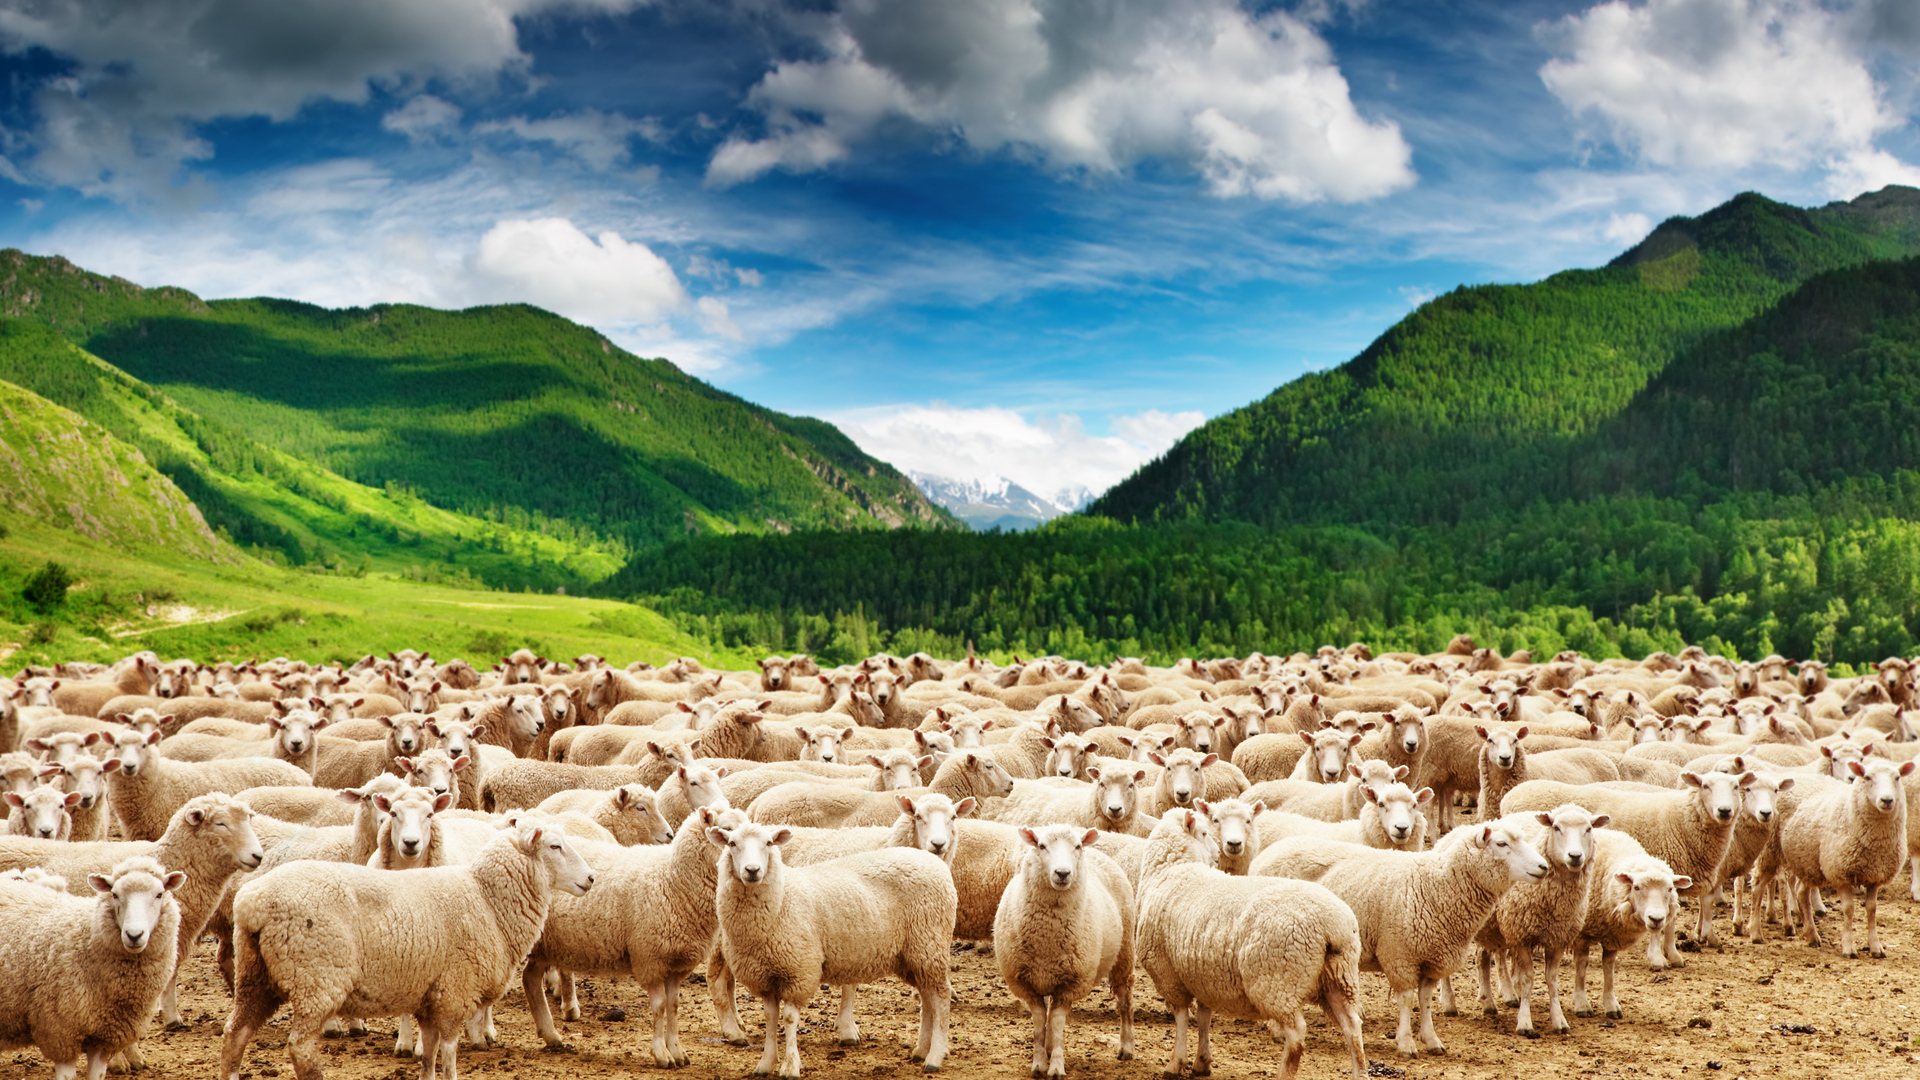 Sheep wallpapers Gallery